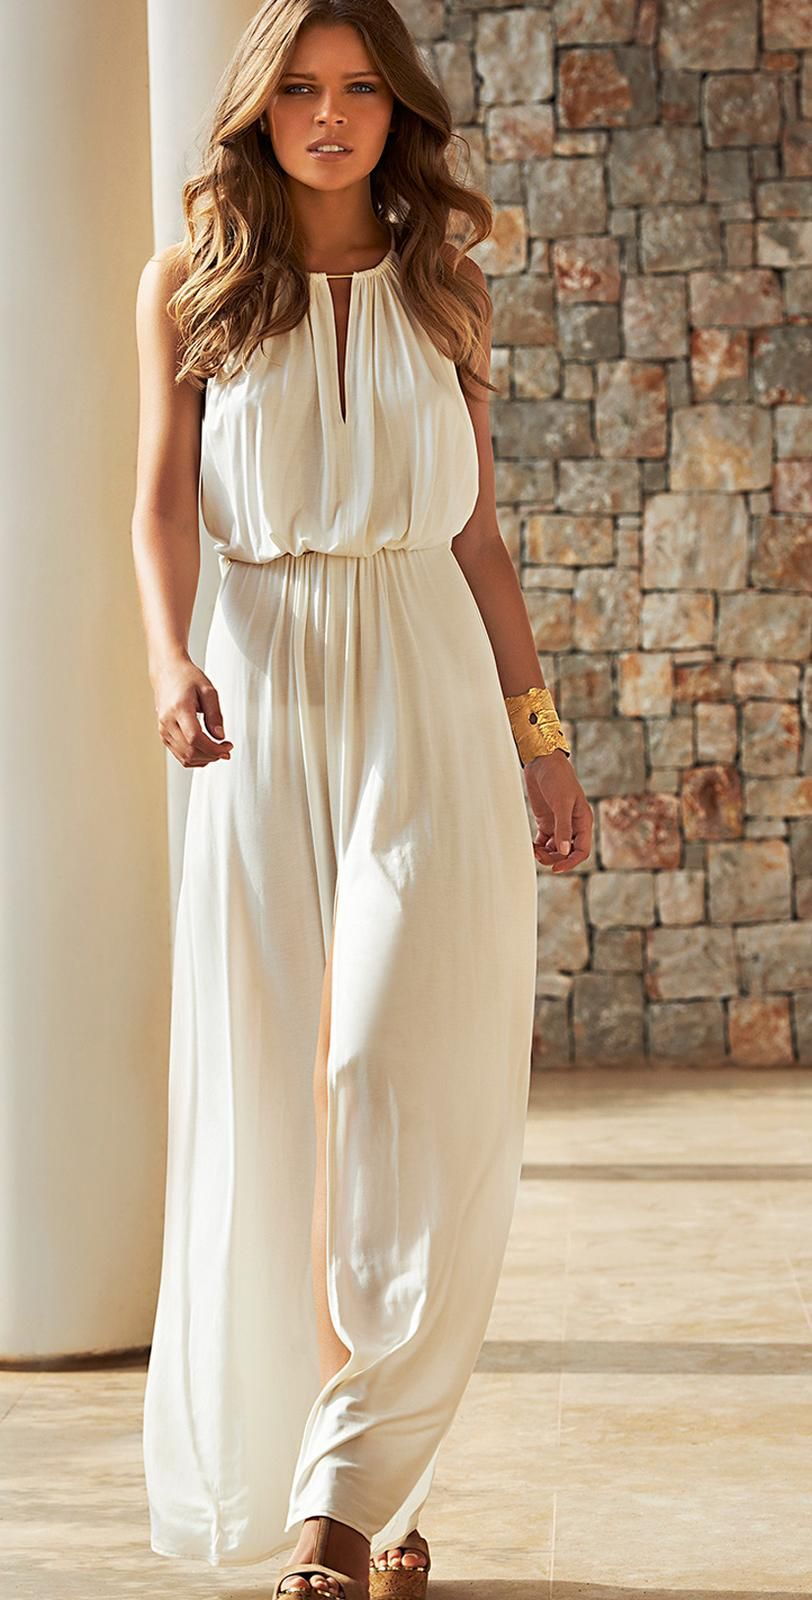 1000  images about Vestidos on Pinterest - Wedding- Maxi dresses ...